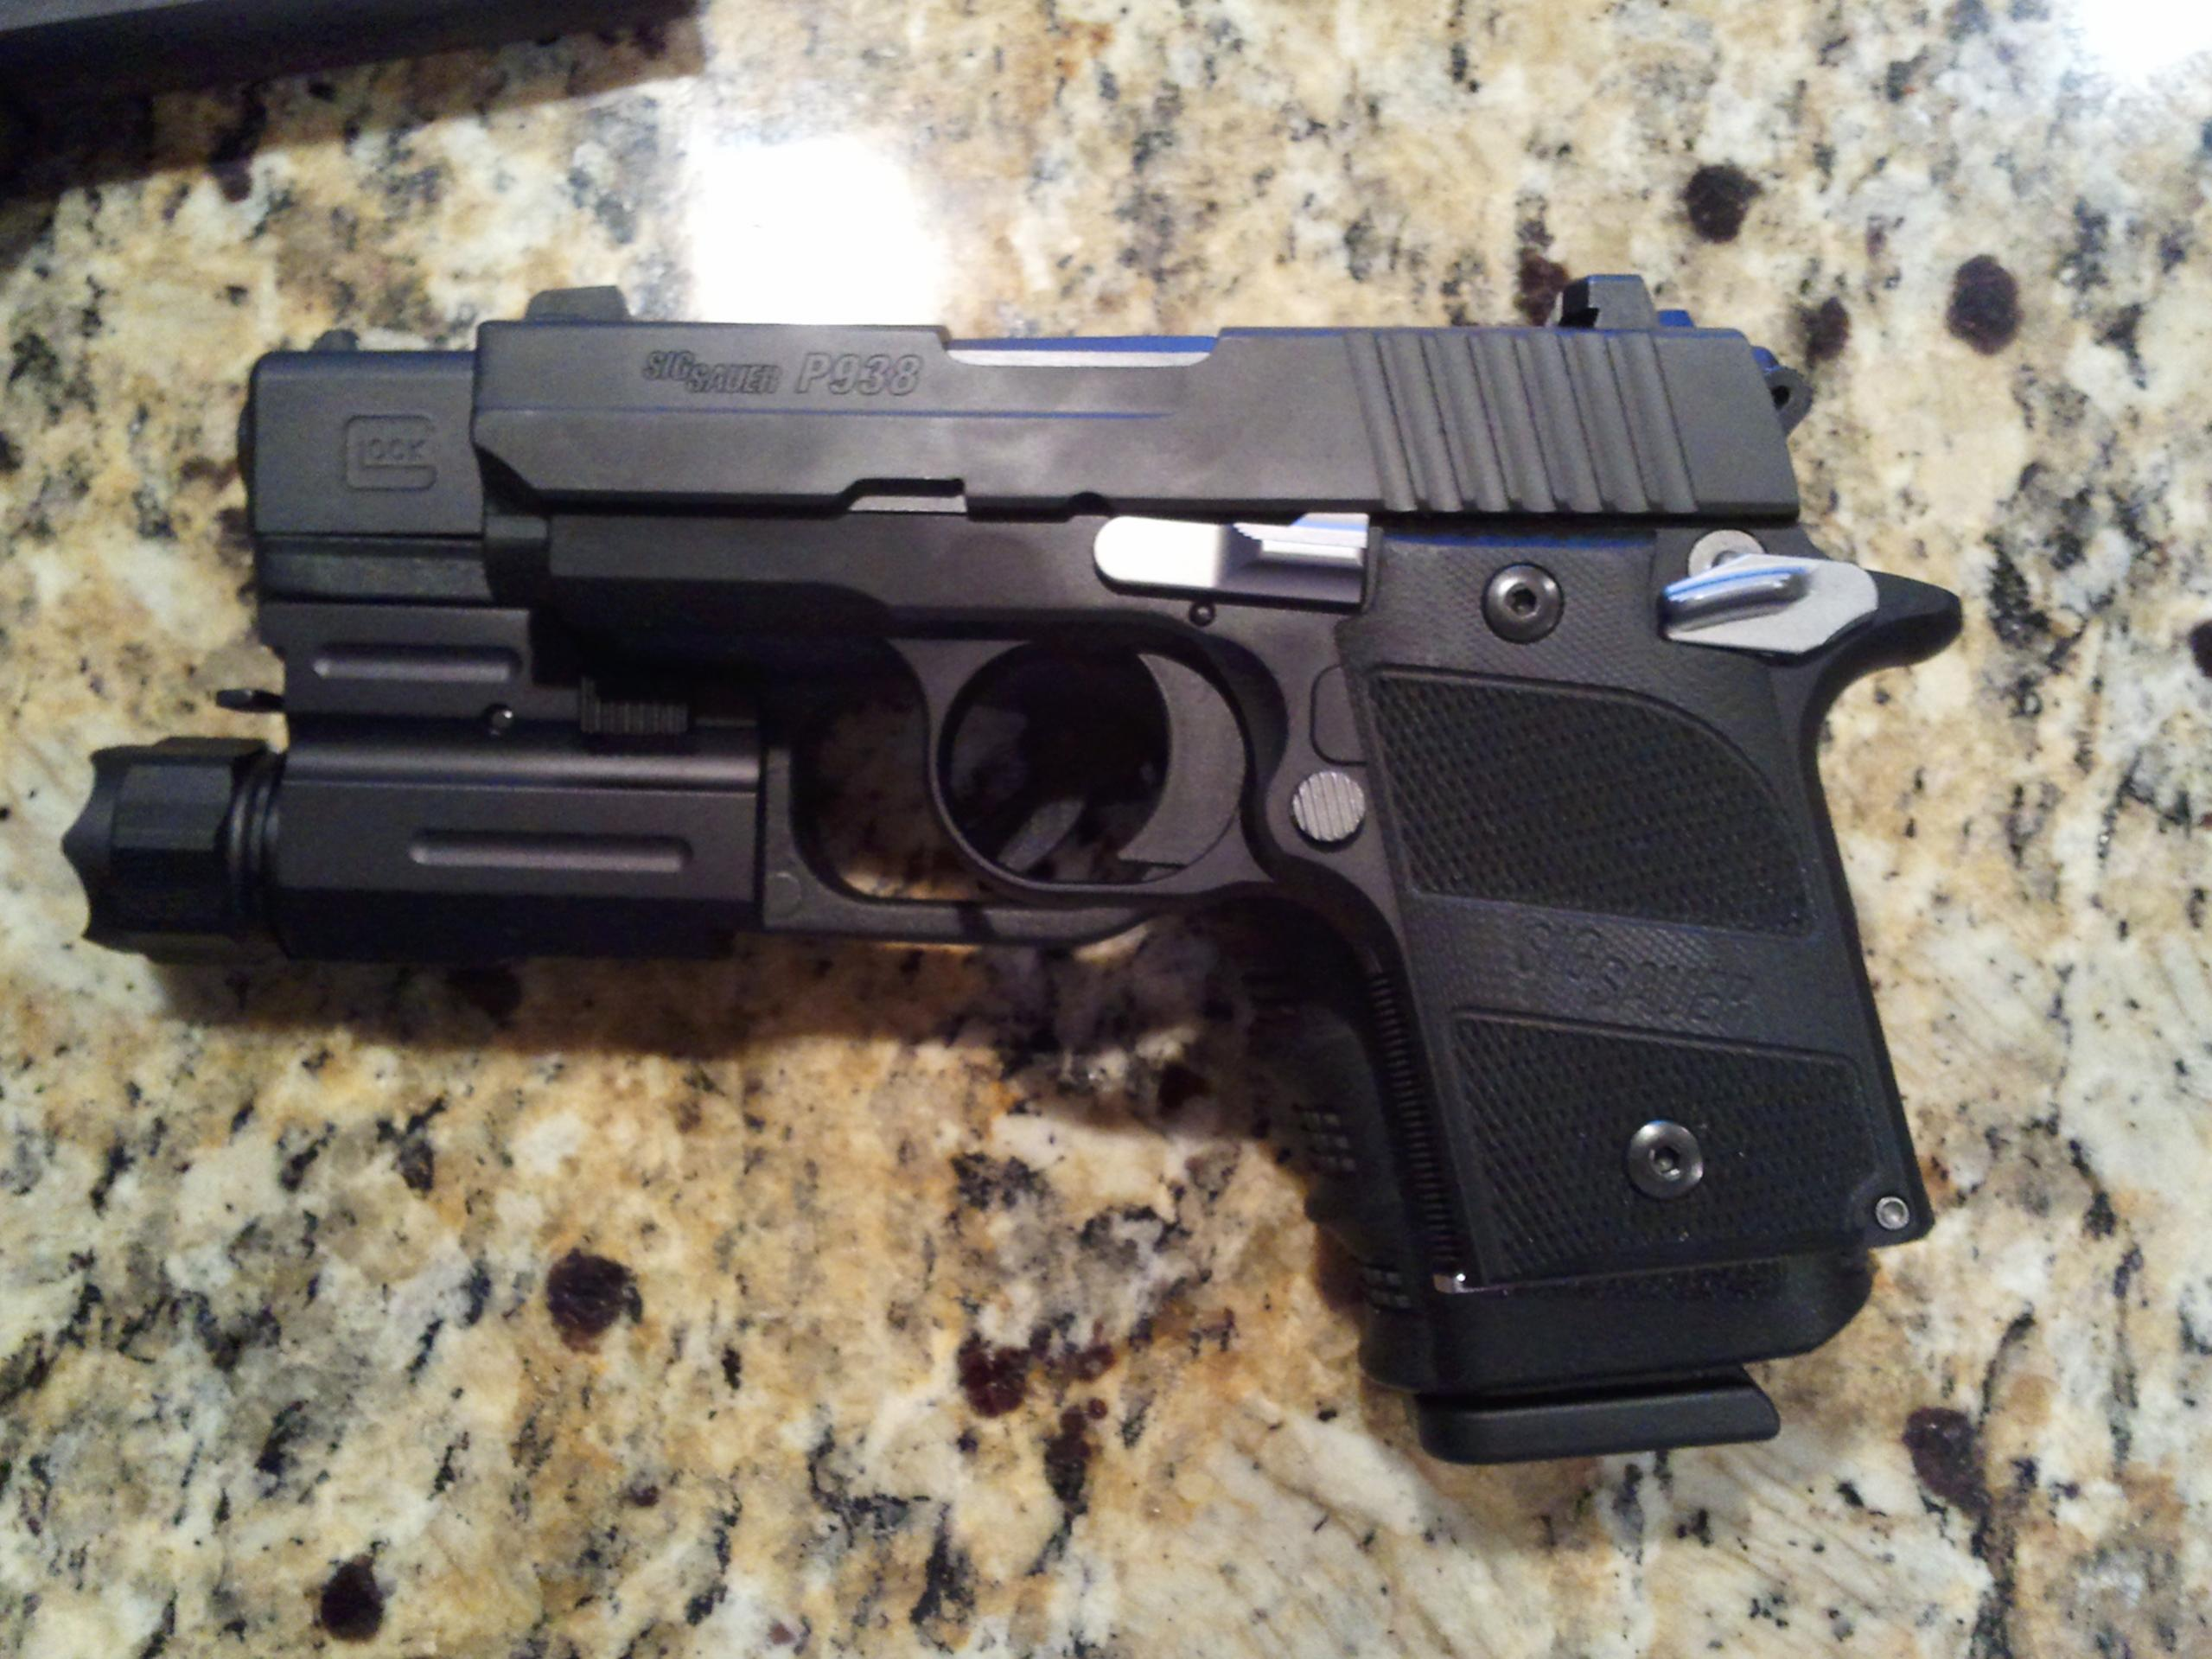 Just picked up my new Sig p938 Nightmare edition-2012-05-24-19.39.42.jpg